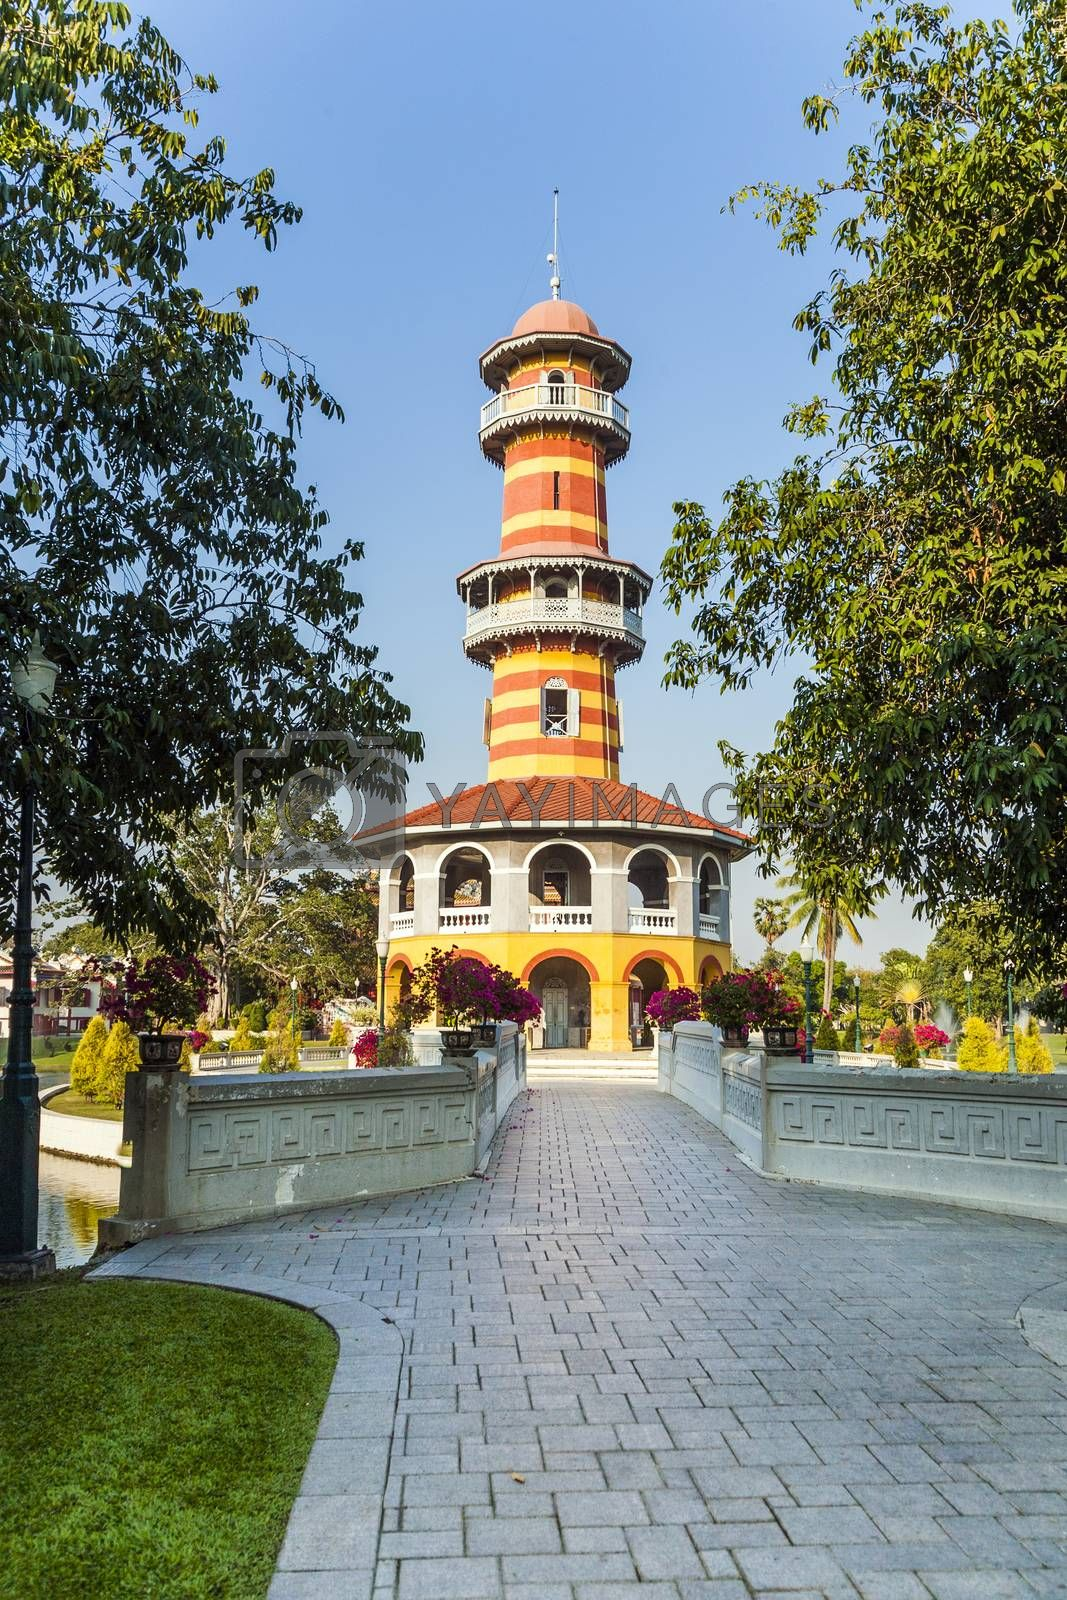 Sages Lookout Tower (Ho Withun Thasana) of the Thai royal Summe by meinzahn